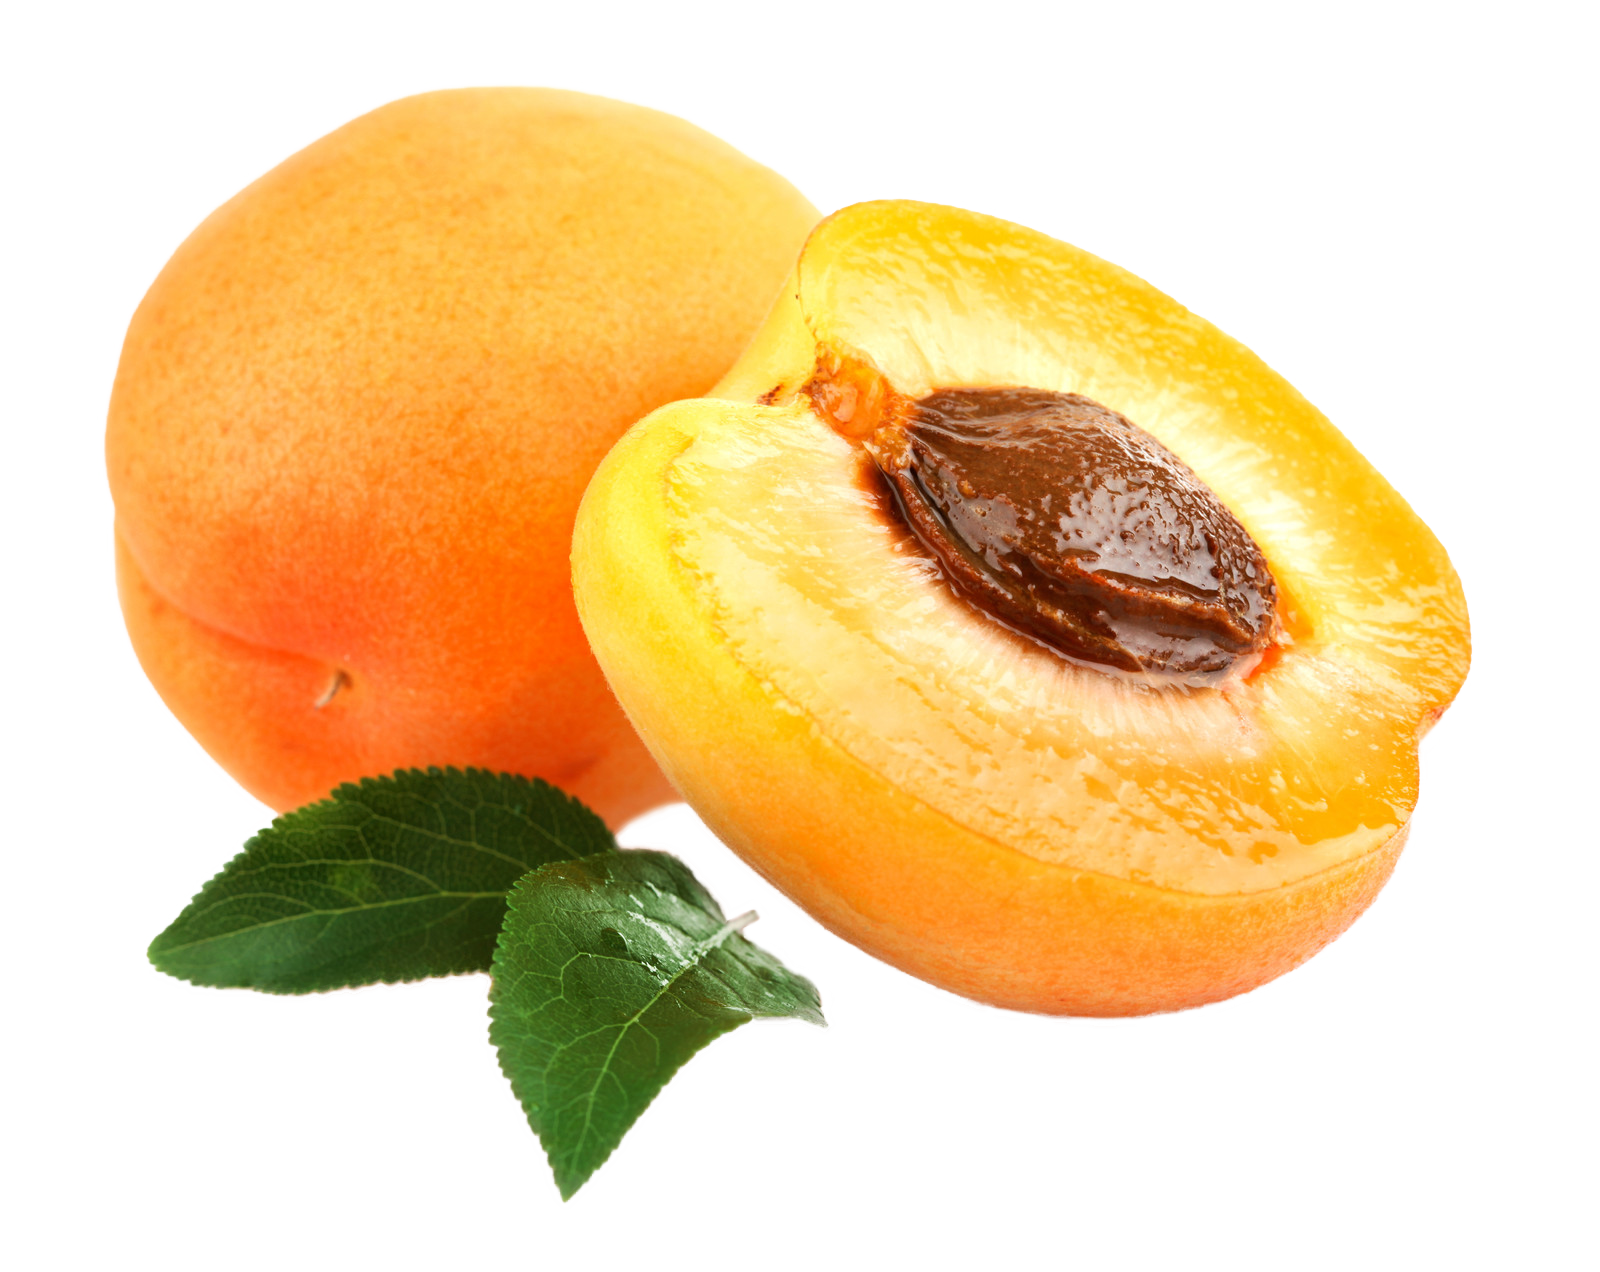 Apricot PNG - 22303